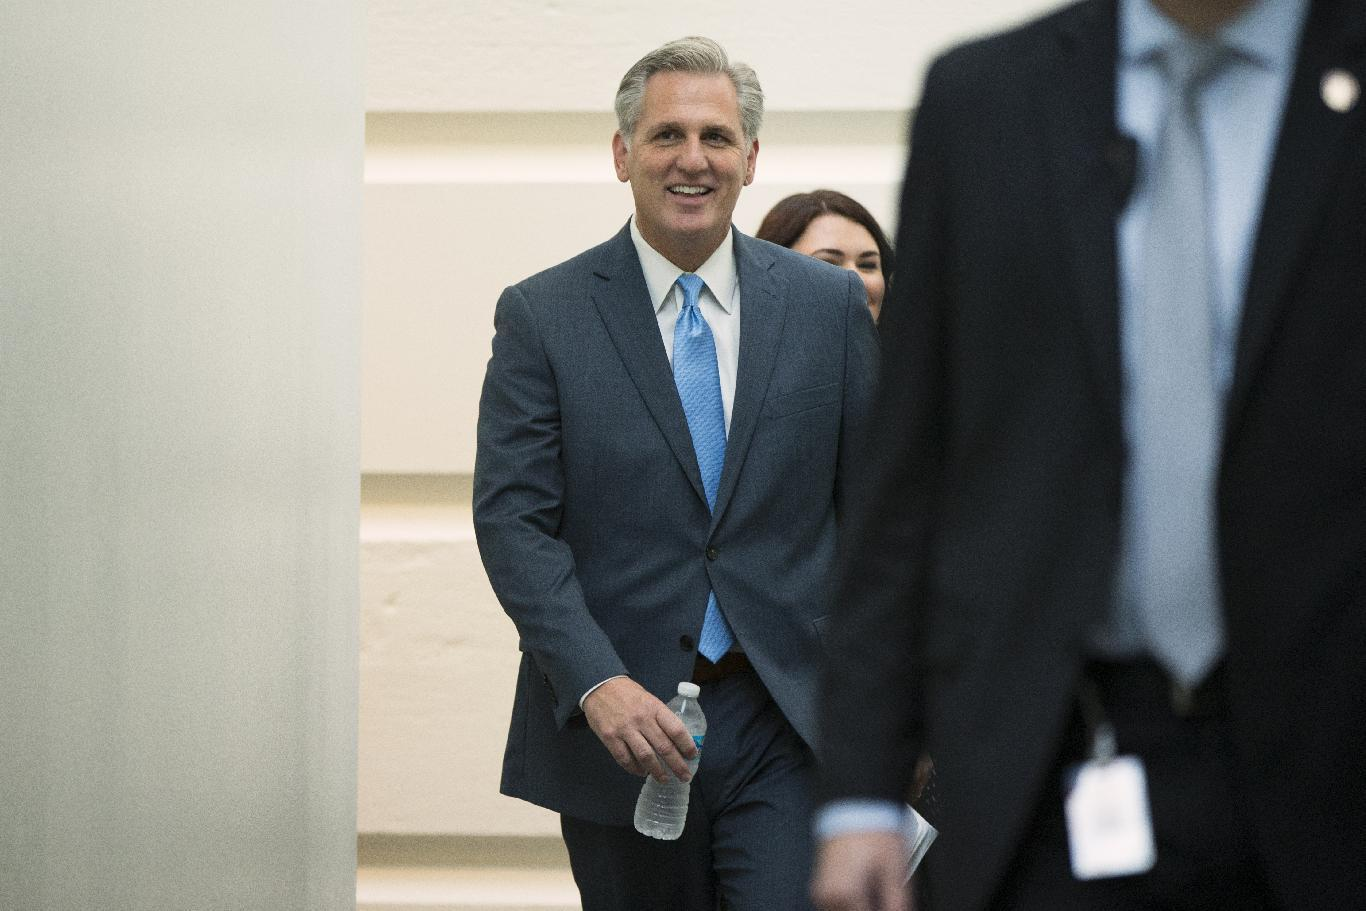 House election: Republicans challenge McCarthy for speaker